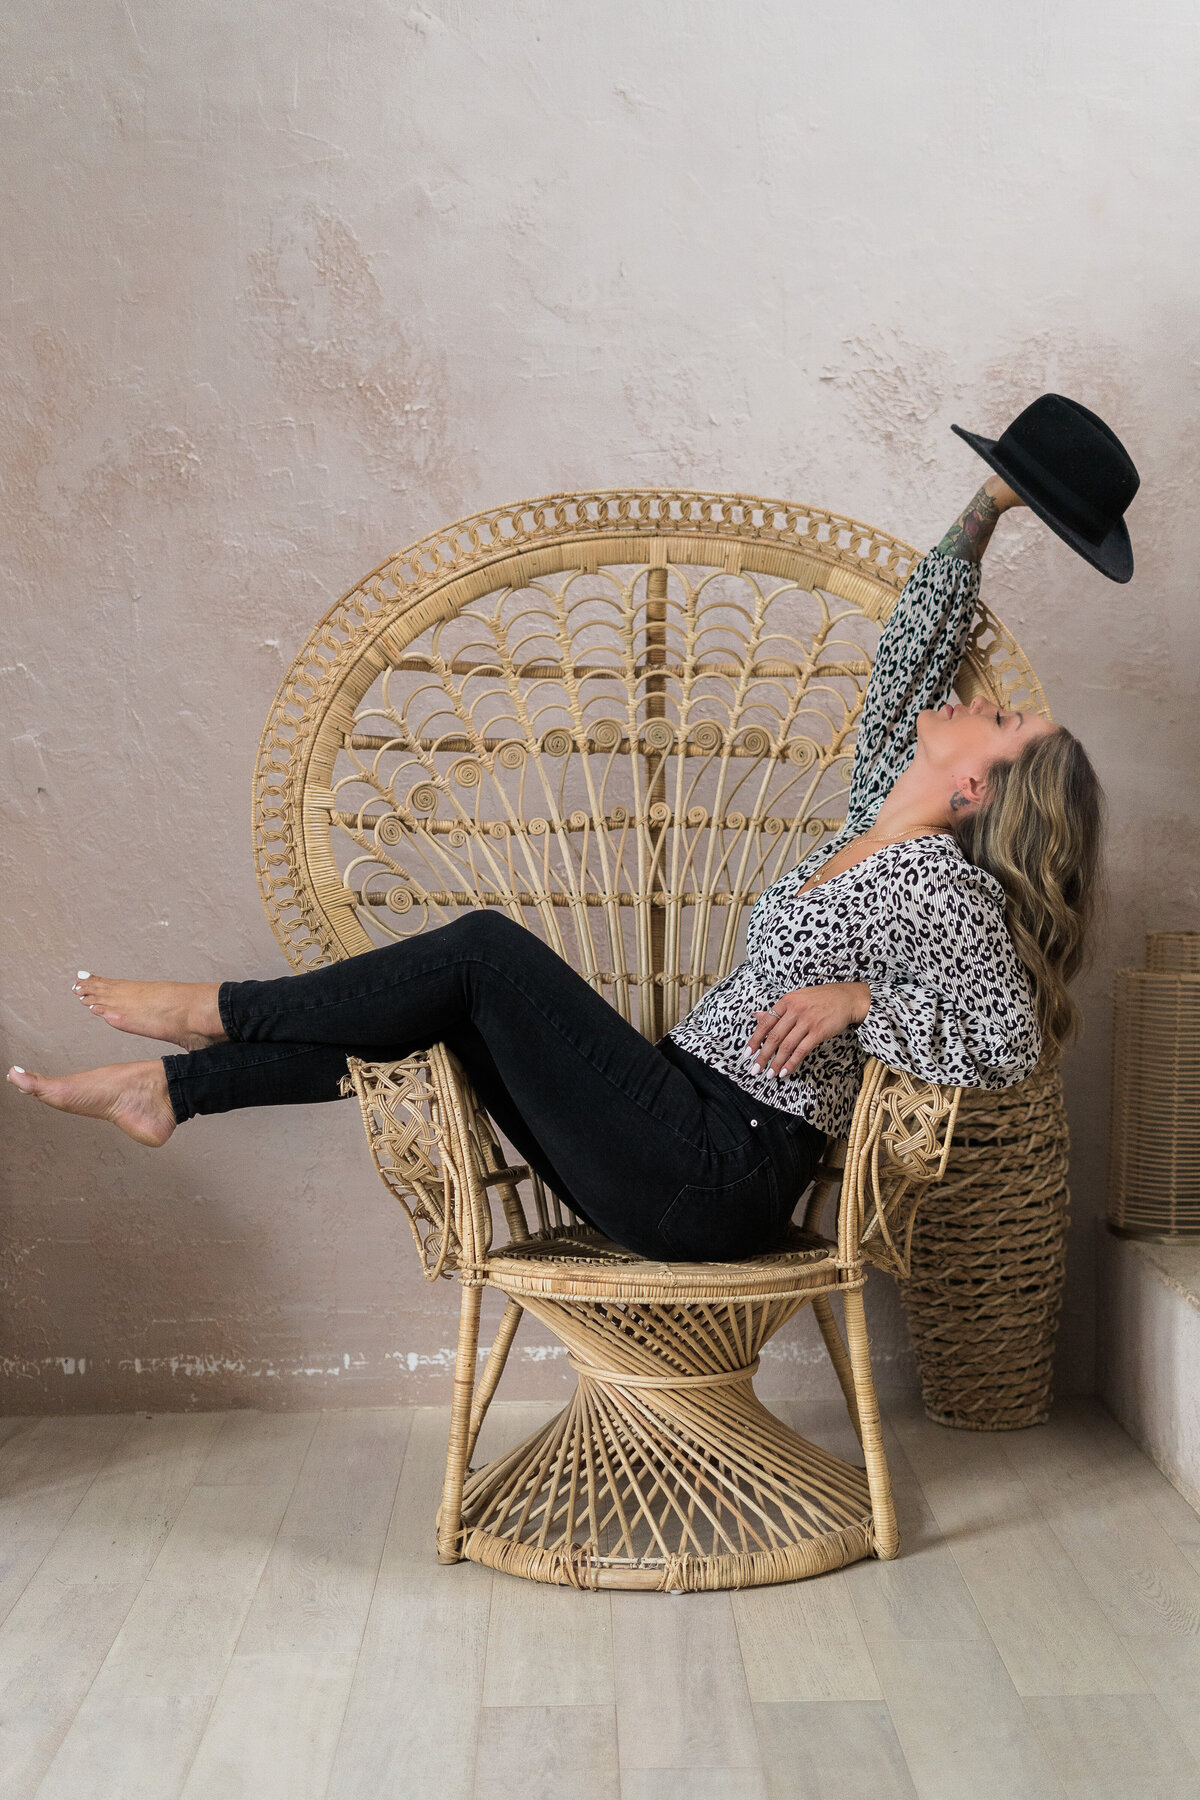 business women posing on a chair holding a hat